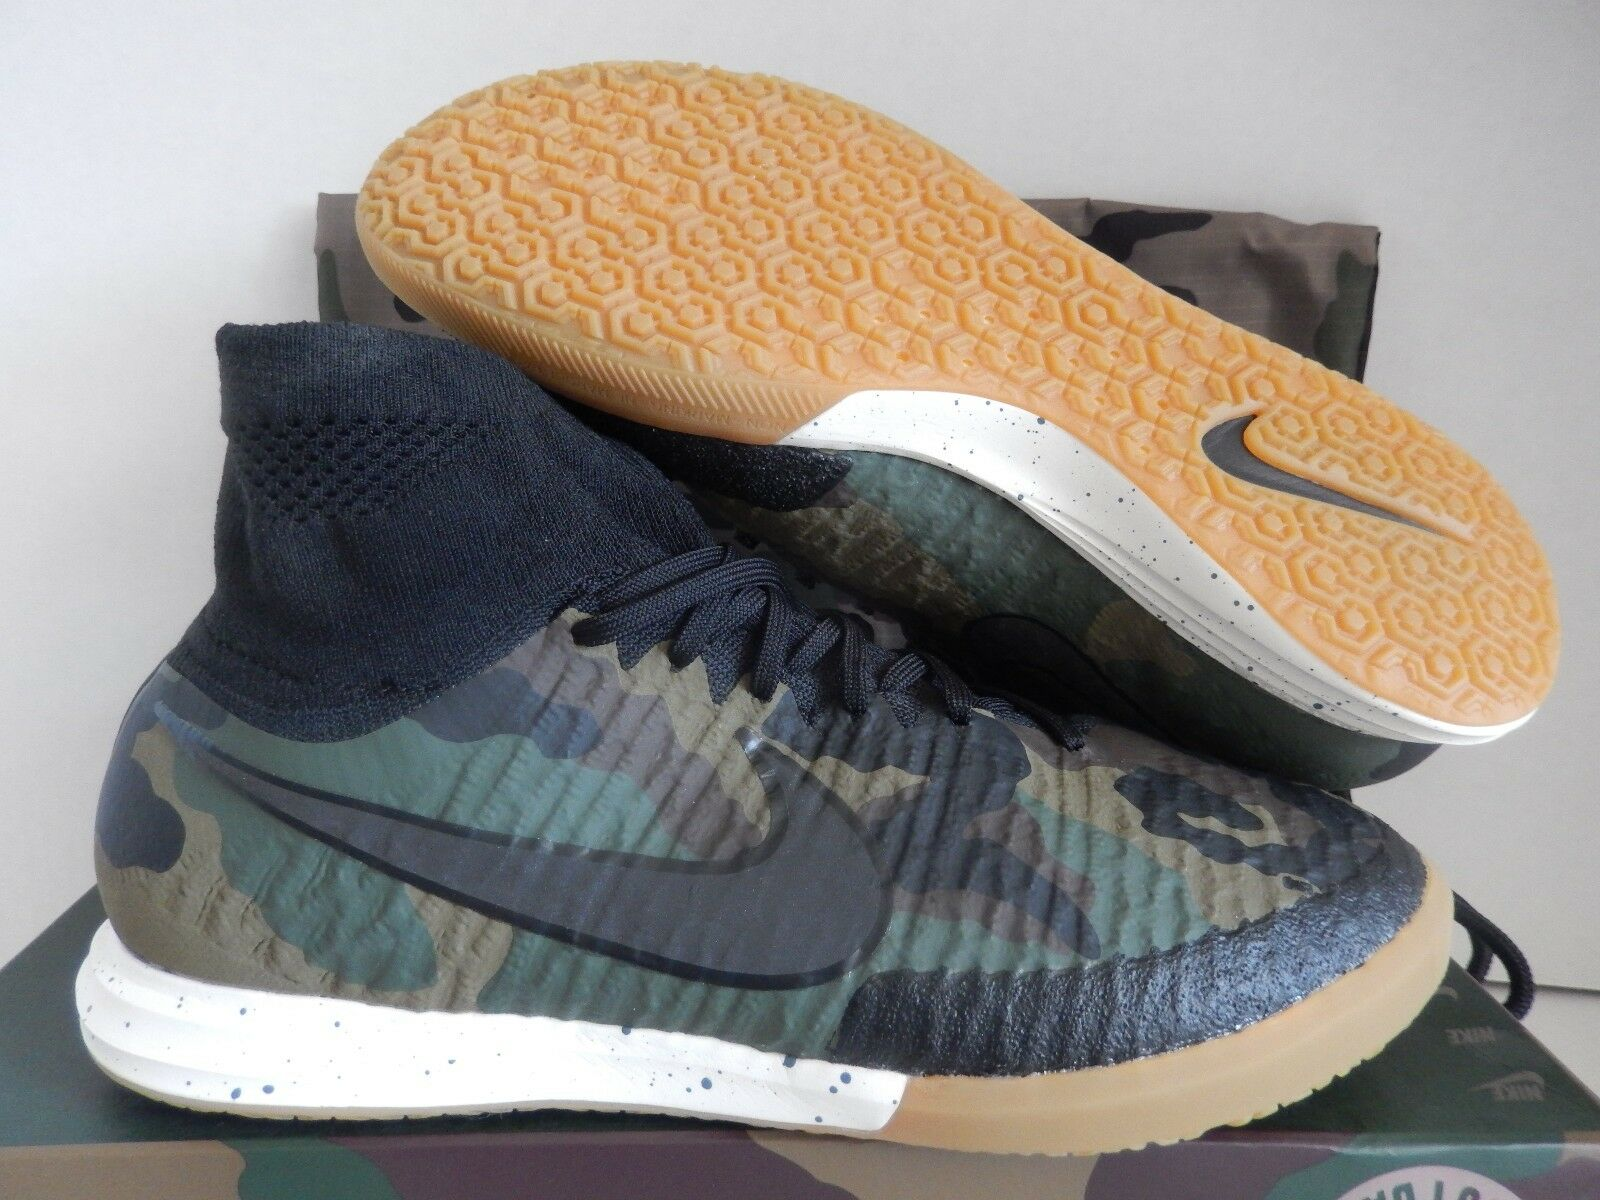 NIKE MAGISTAX PROXIMO SE IC MEDIUM OLIVE  ARMY CAMO  SZ 8.5 [835369-200]